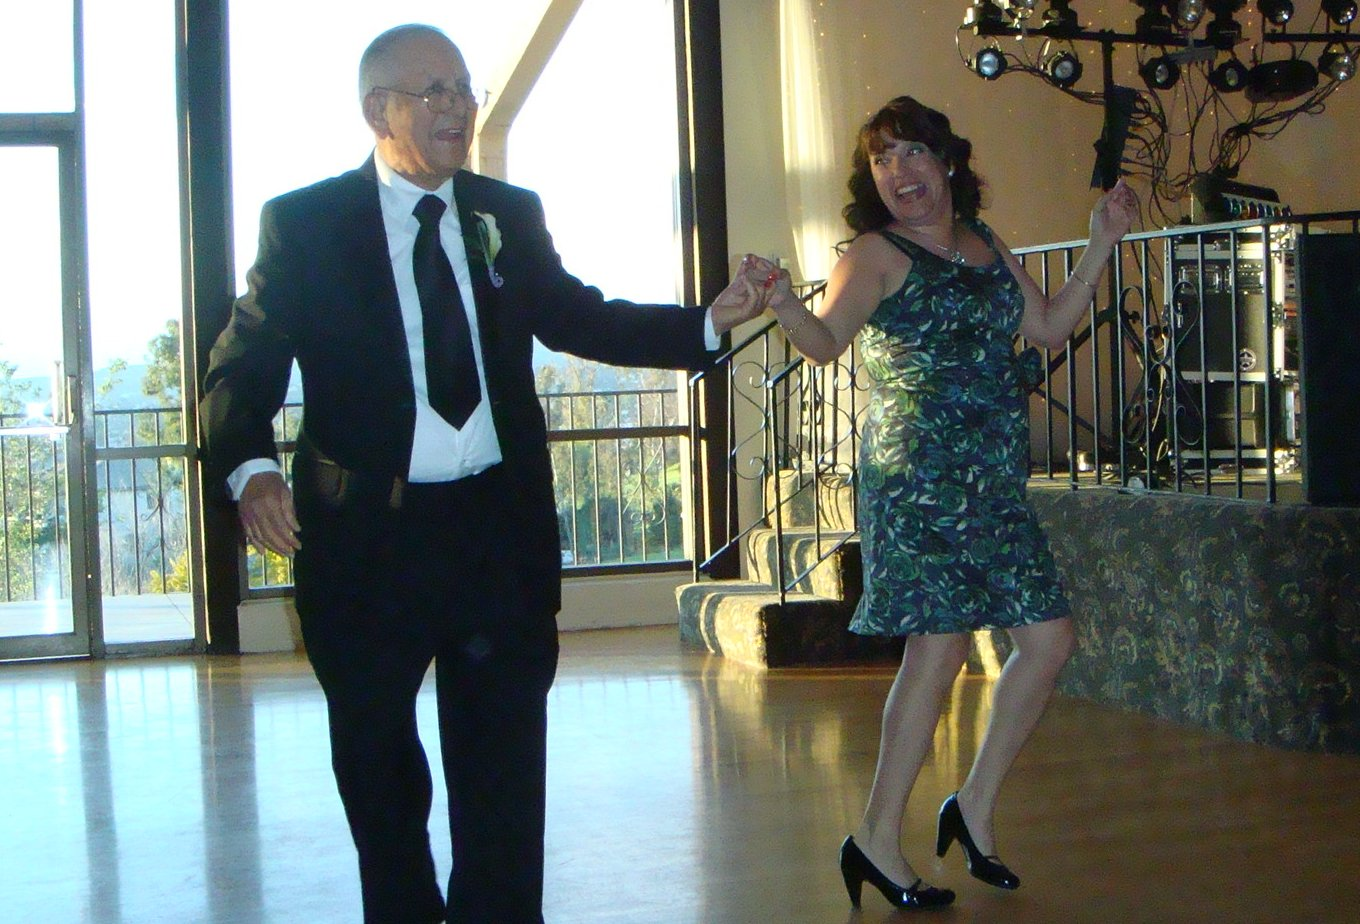 A man in a black suit dancing with a woman in a dark-print, knee-length dress and black heels. The are on the dance floor at a wedding reception.